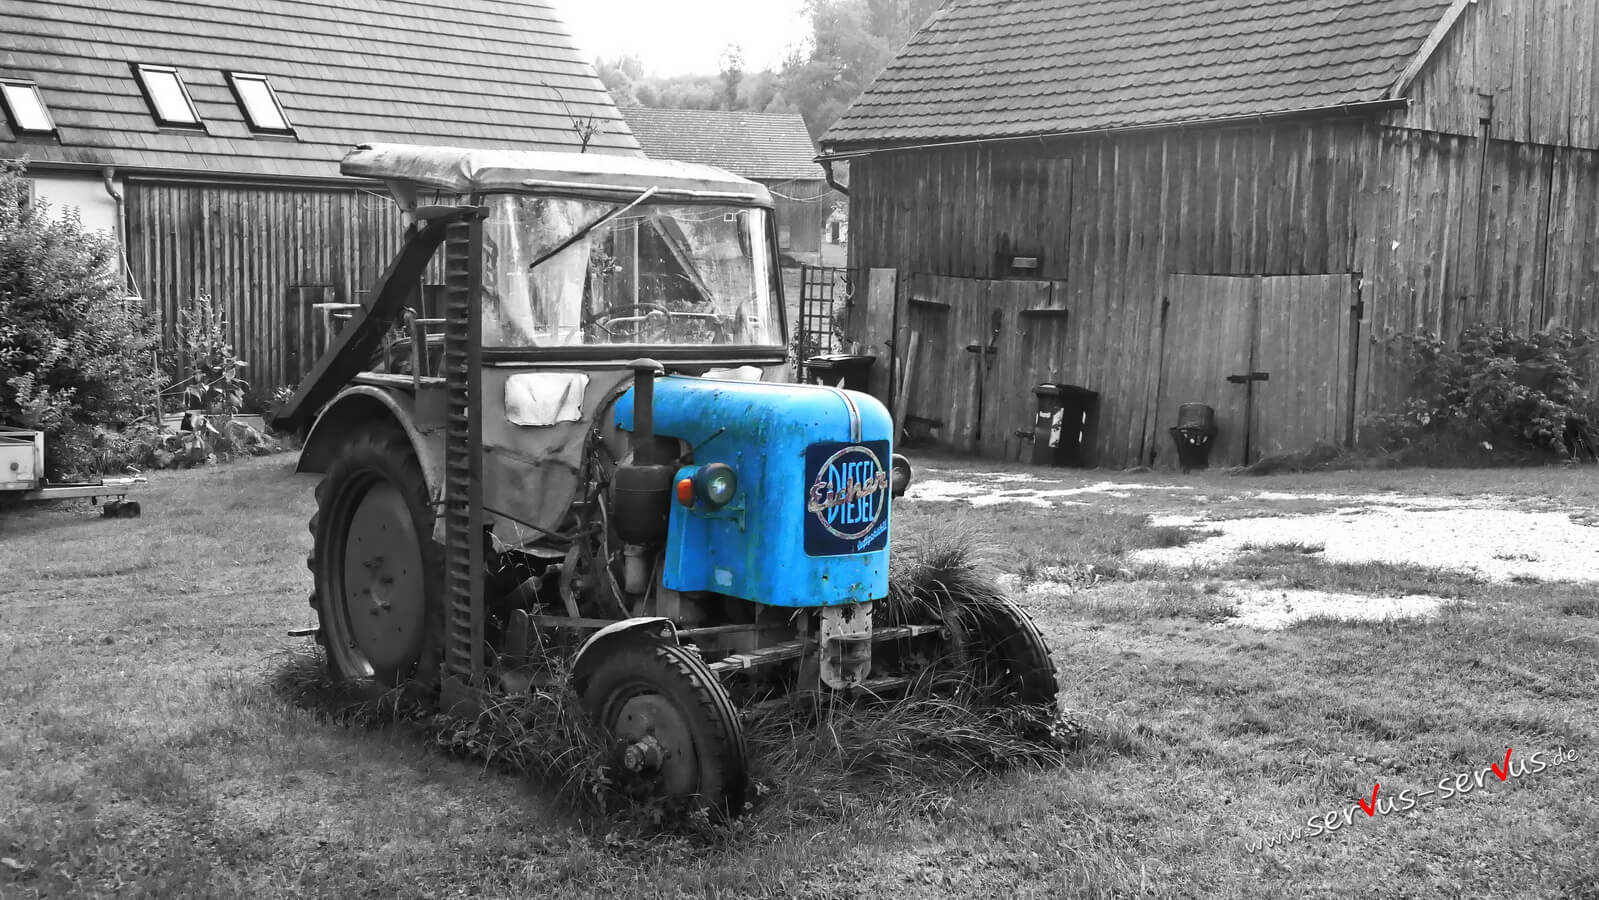 Blauer traktor, colorkey